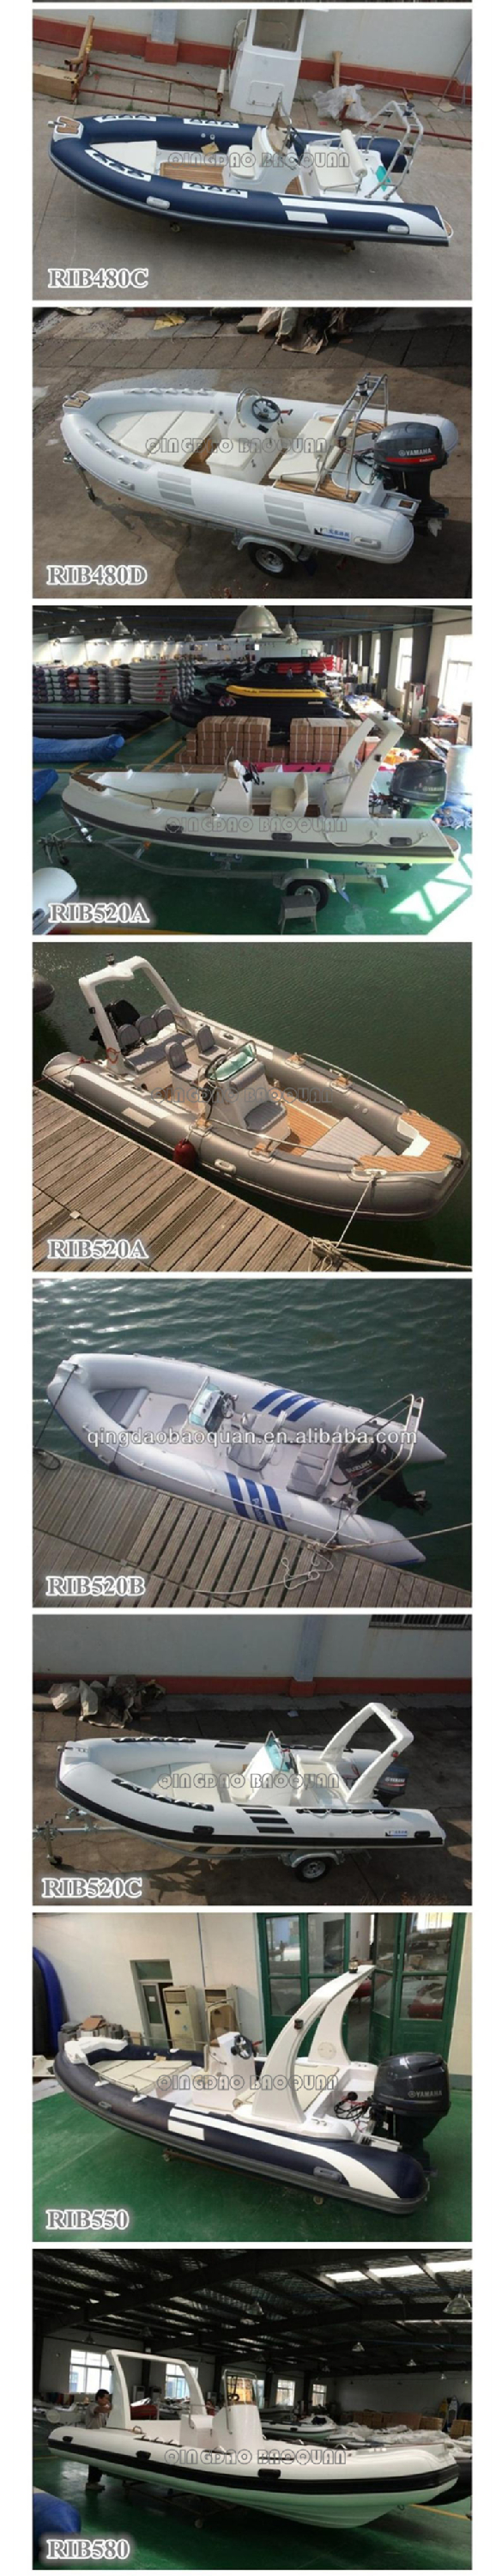 17ft rib boat inflatable boat RIB520A with CE